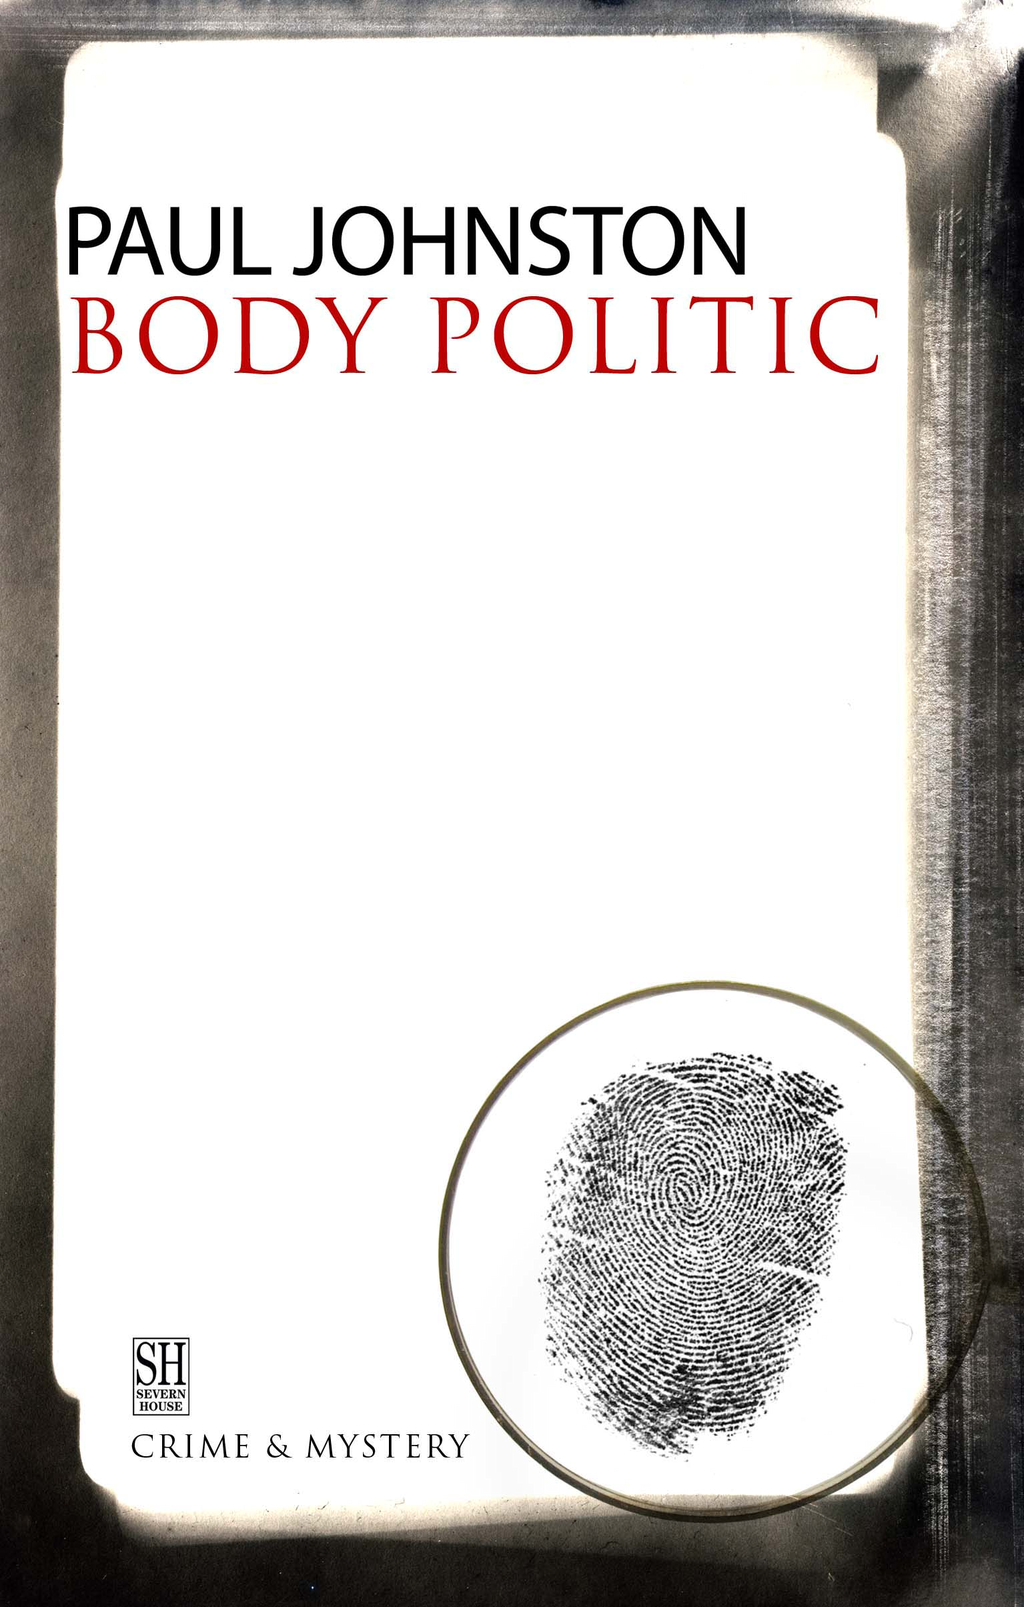 Body Politic By: Paul Johnston